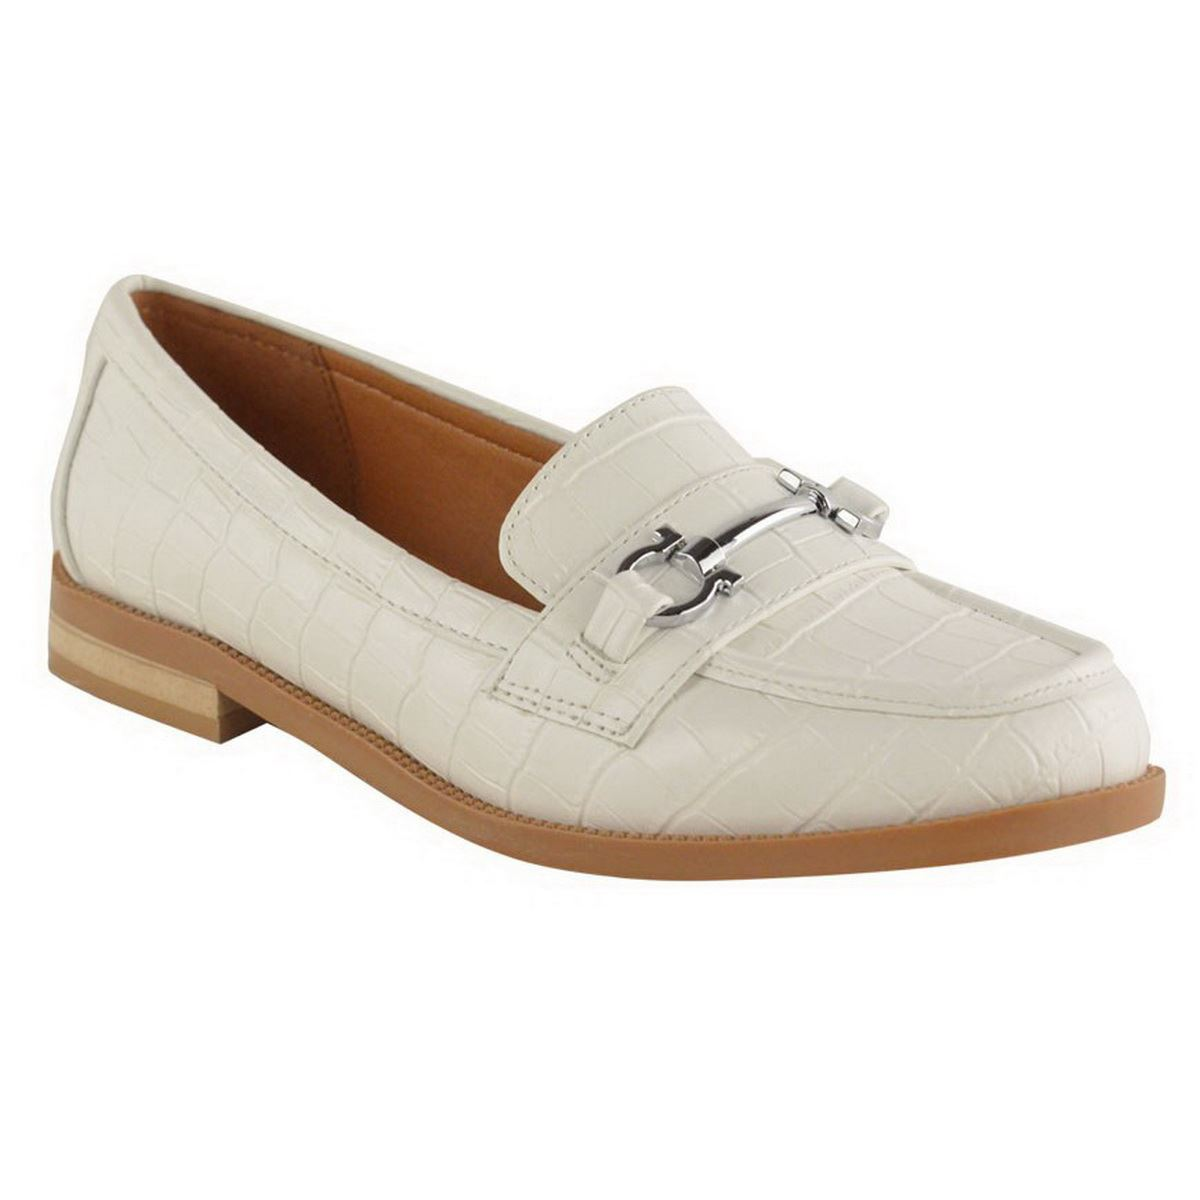 WOMENS LADIES VINTAGE FLAT LOAFERS SMART CASUAL SCHOOL OFFICE WORK SHOES SIZE | EBay